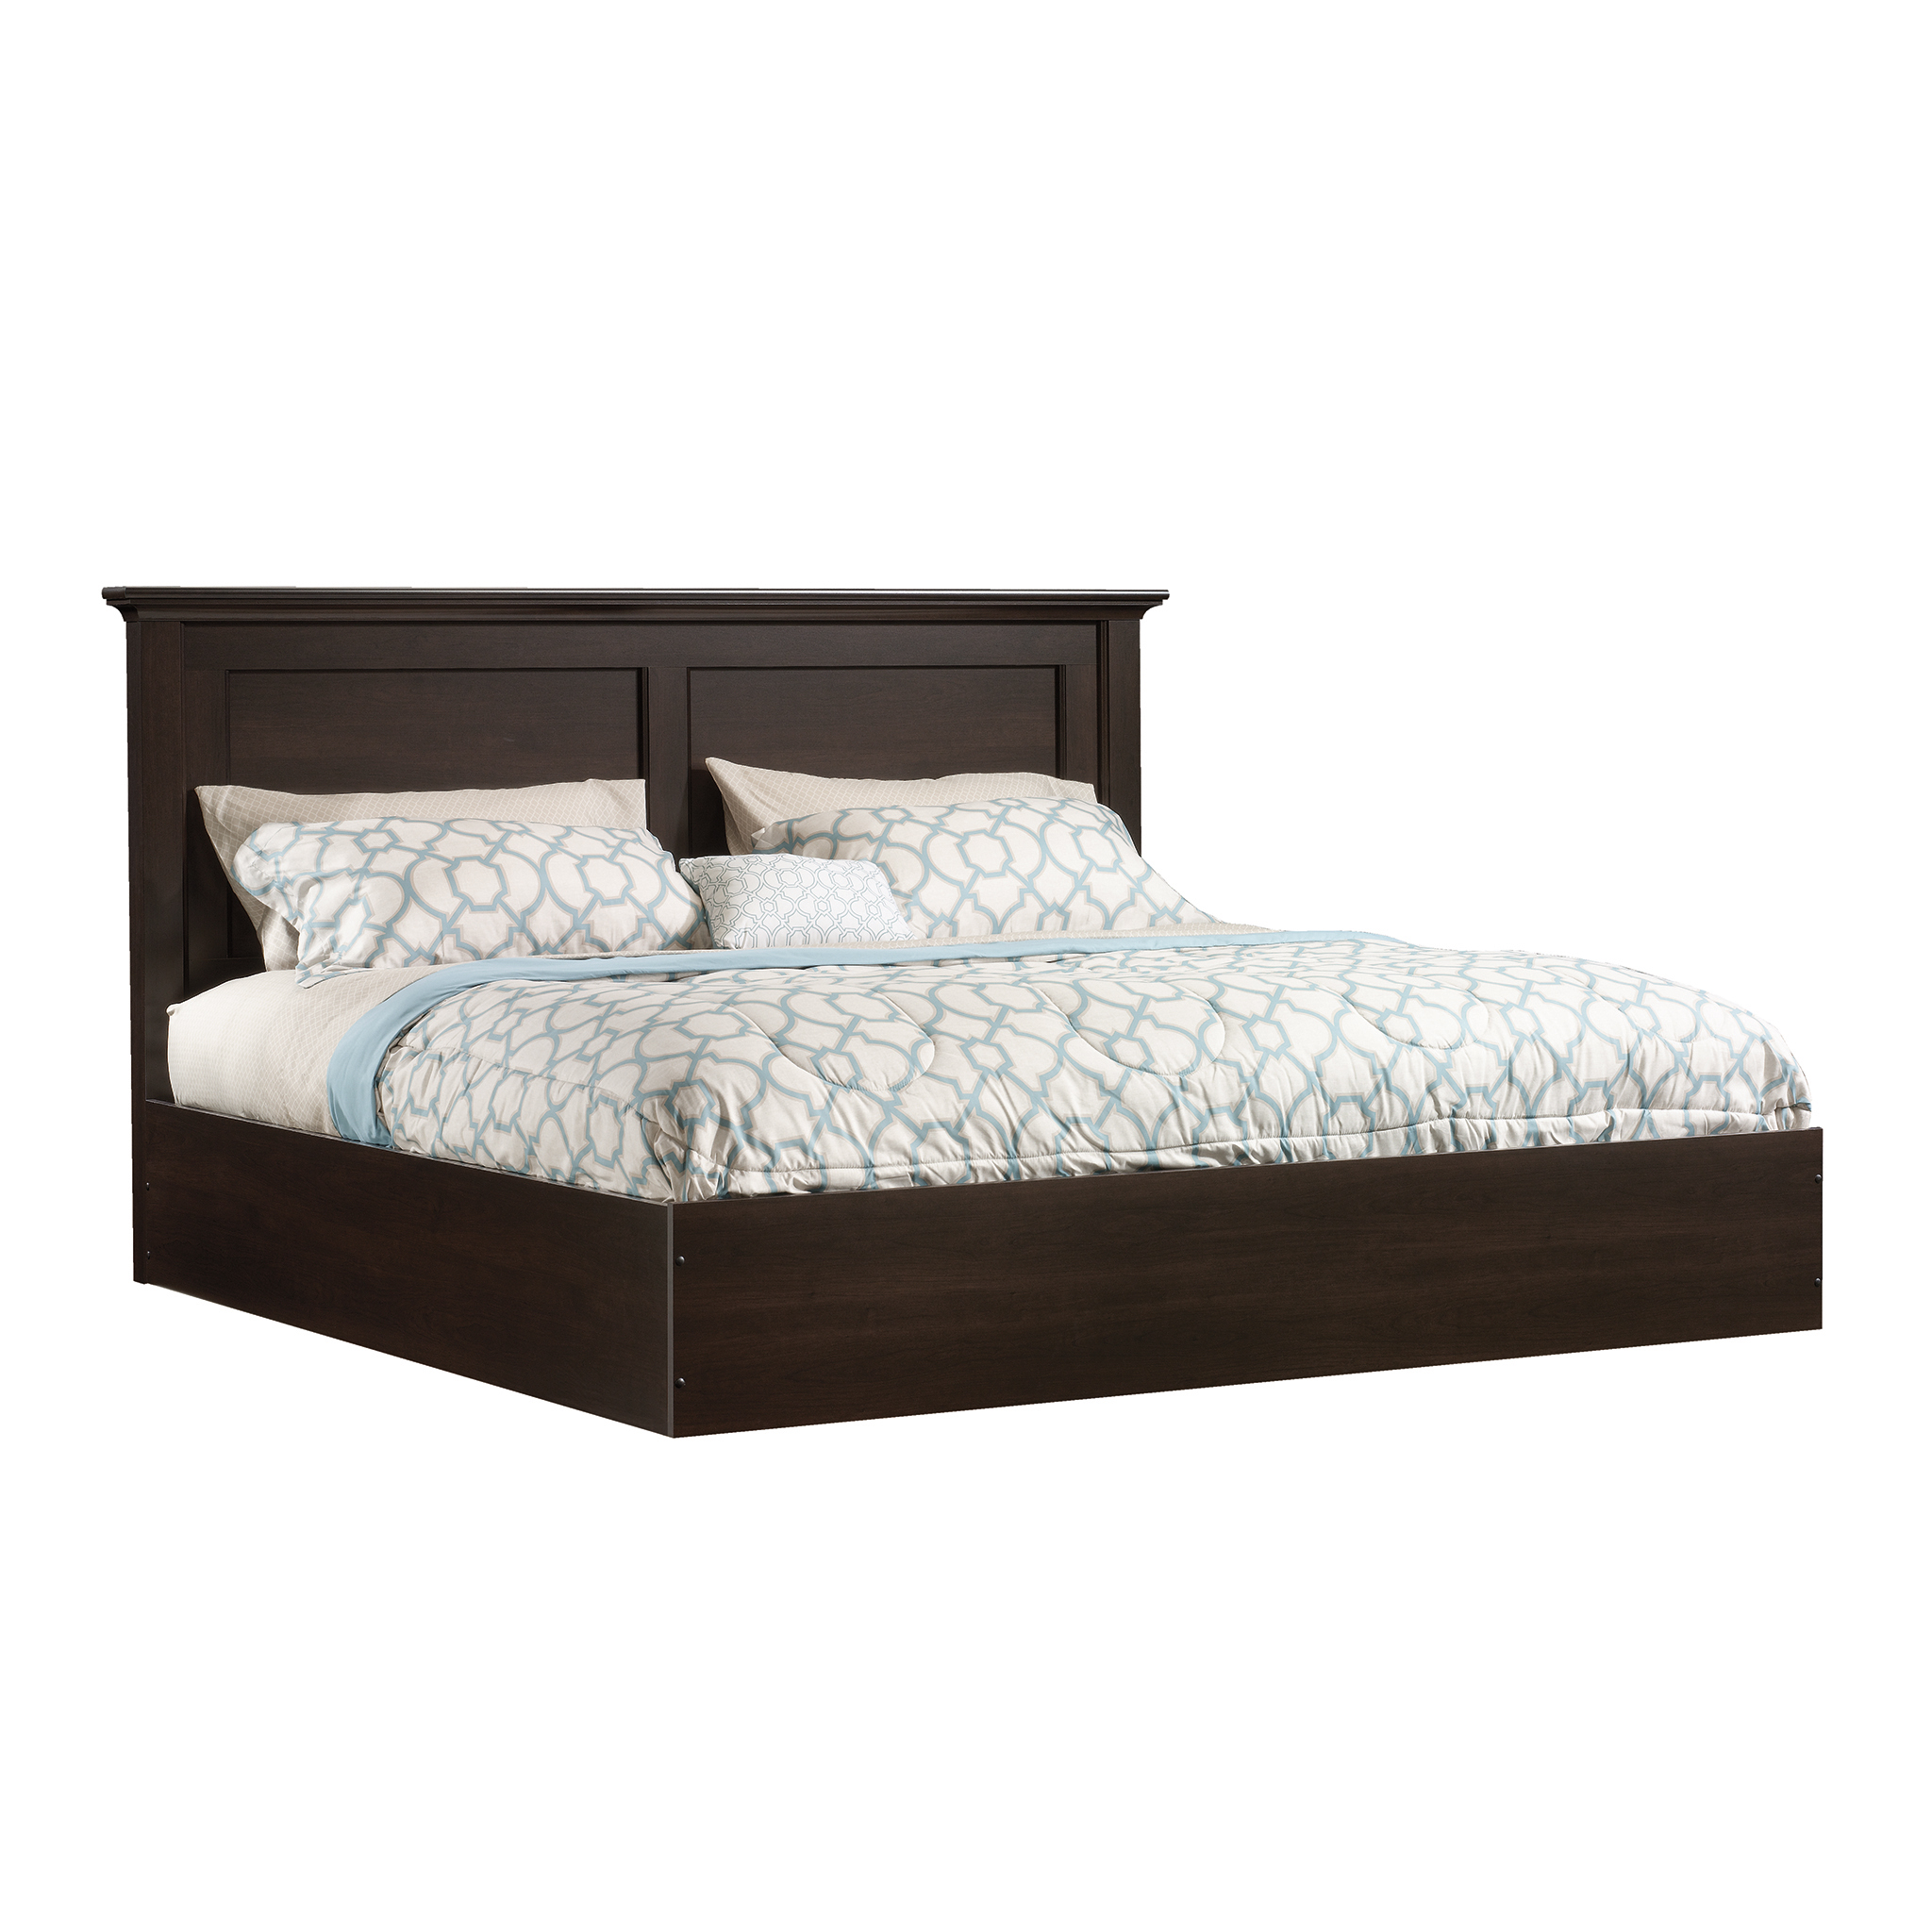 Sauder Beginnings King Platform Bed, Cinnamon Cherry Finish